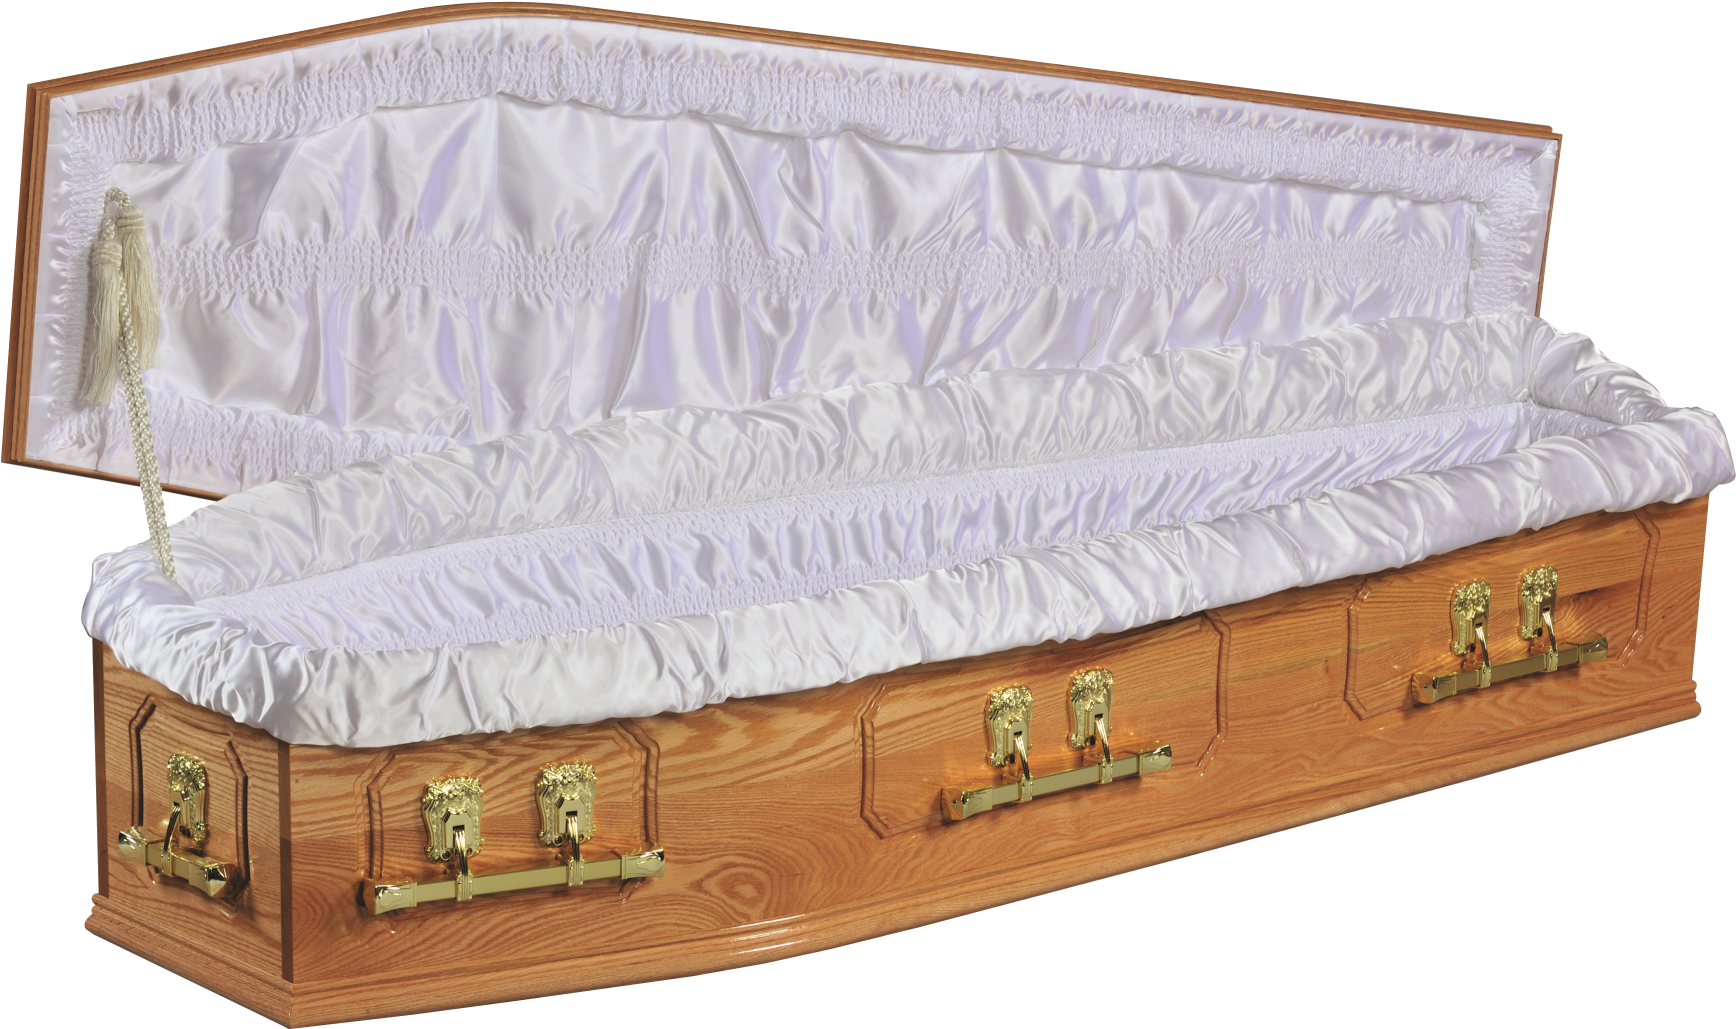 Transparent coffin wood. Download suite image open